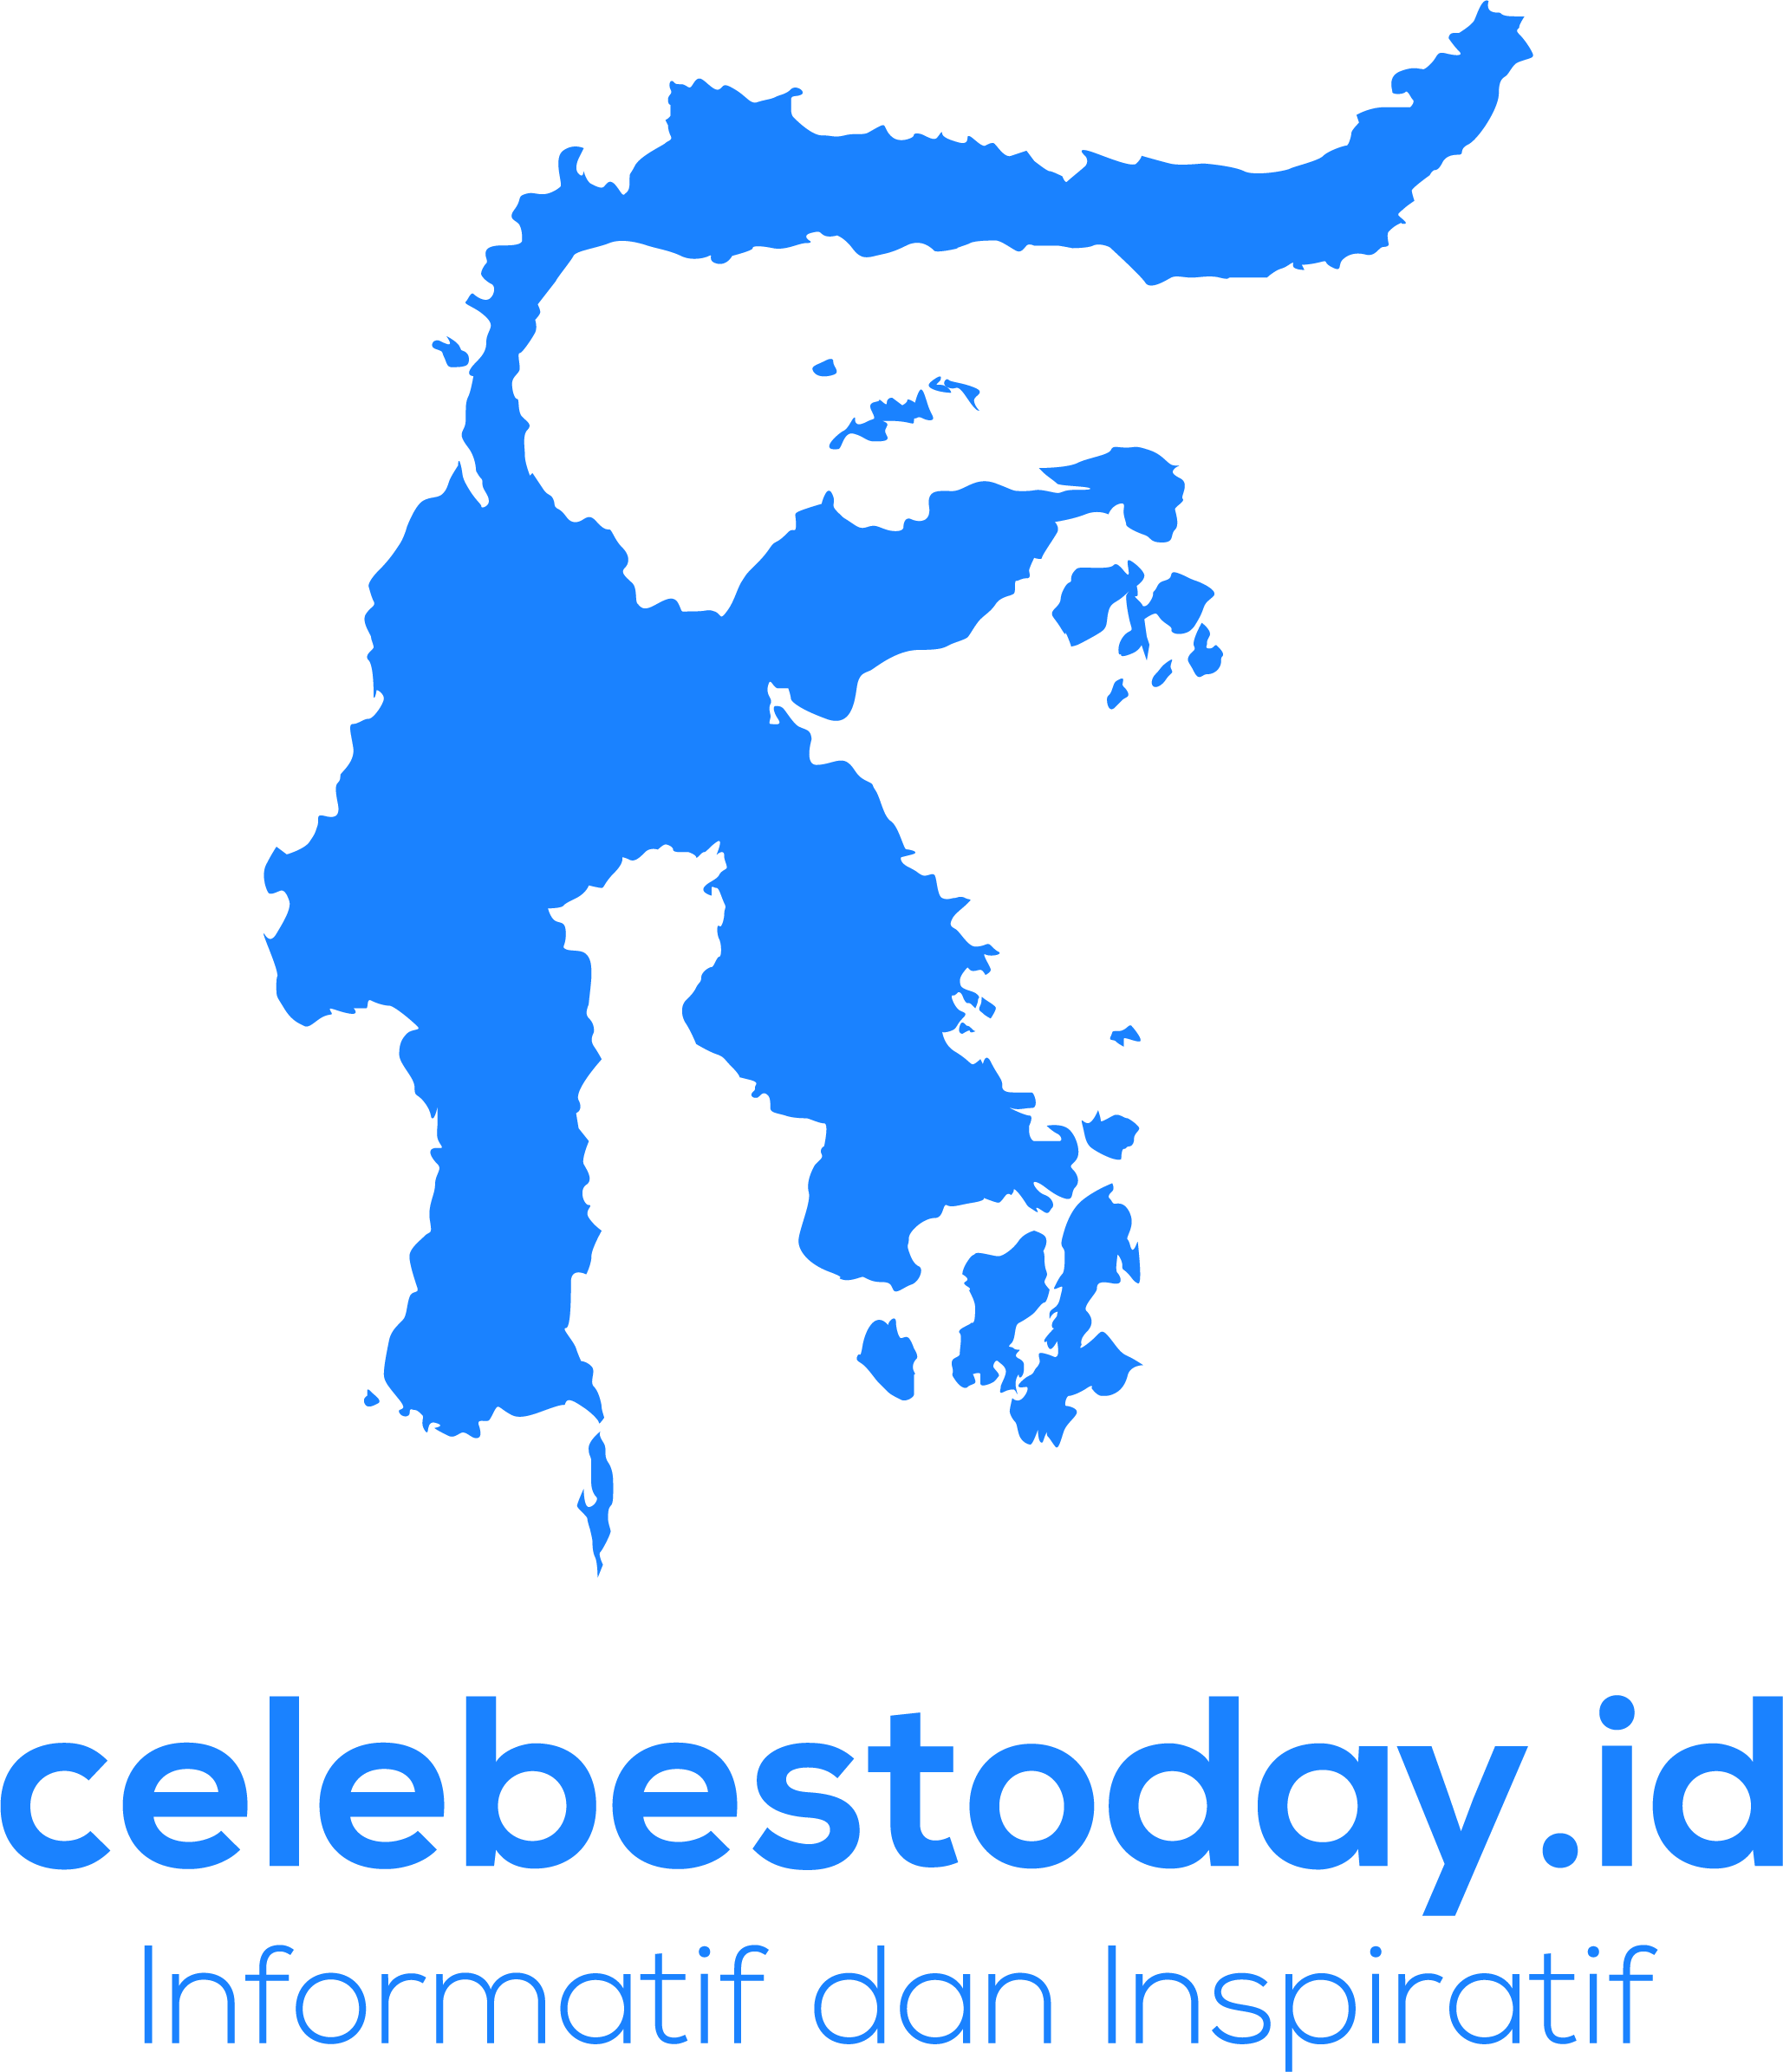 celebestoday.id